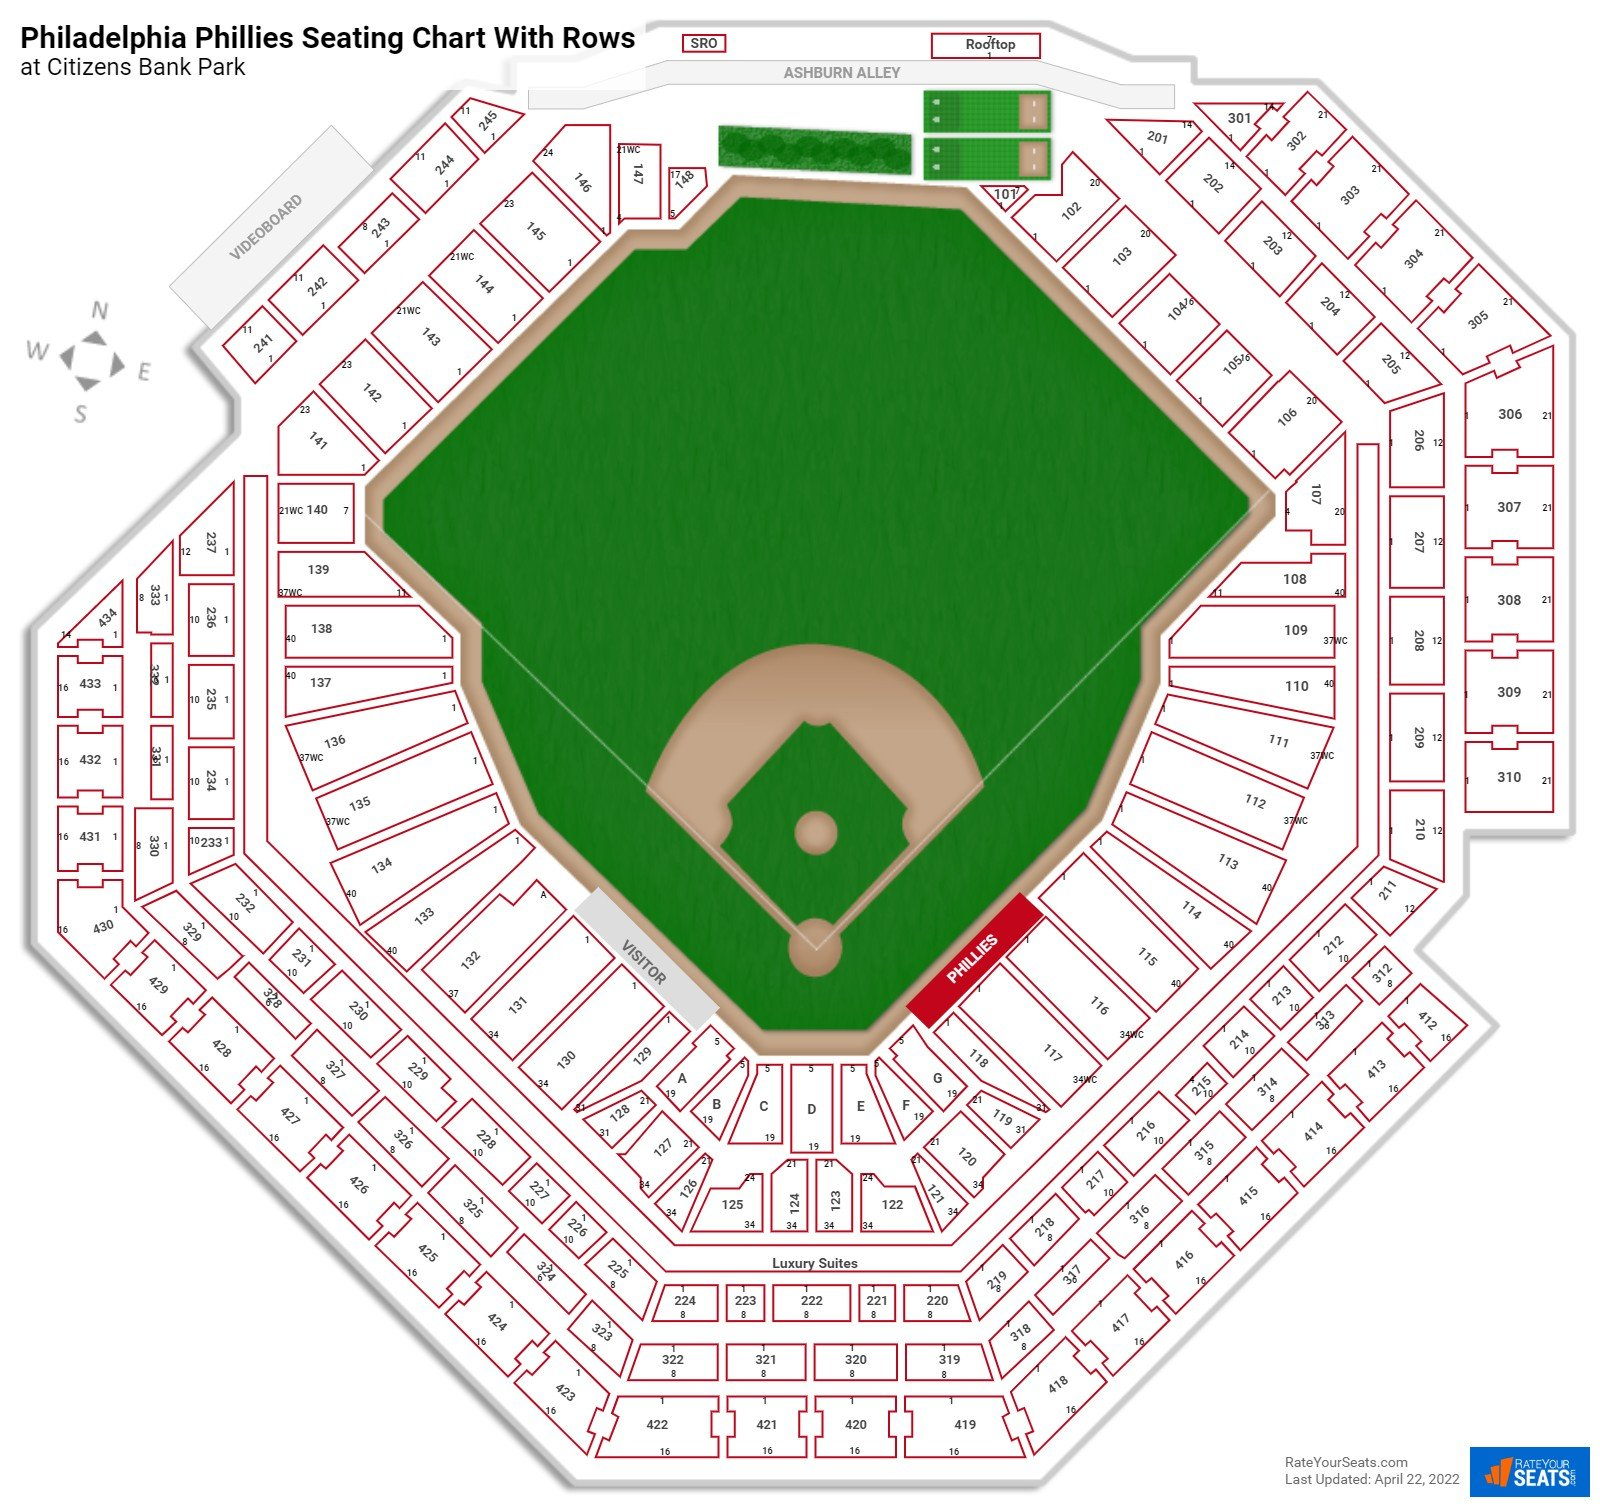 Citizens Bank Park seating chart with rows baseball